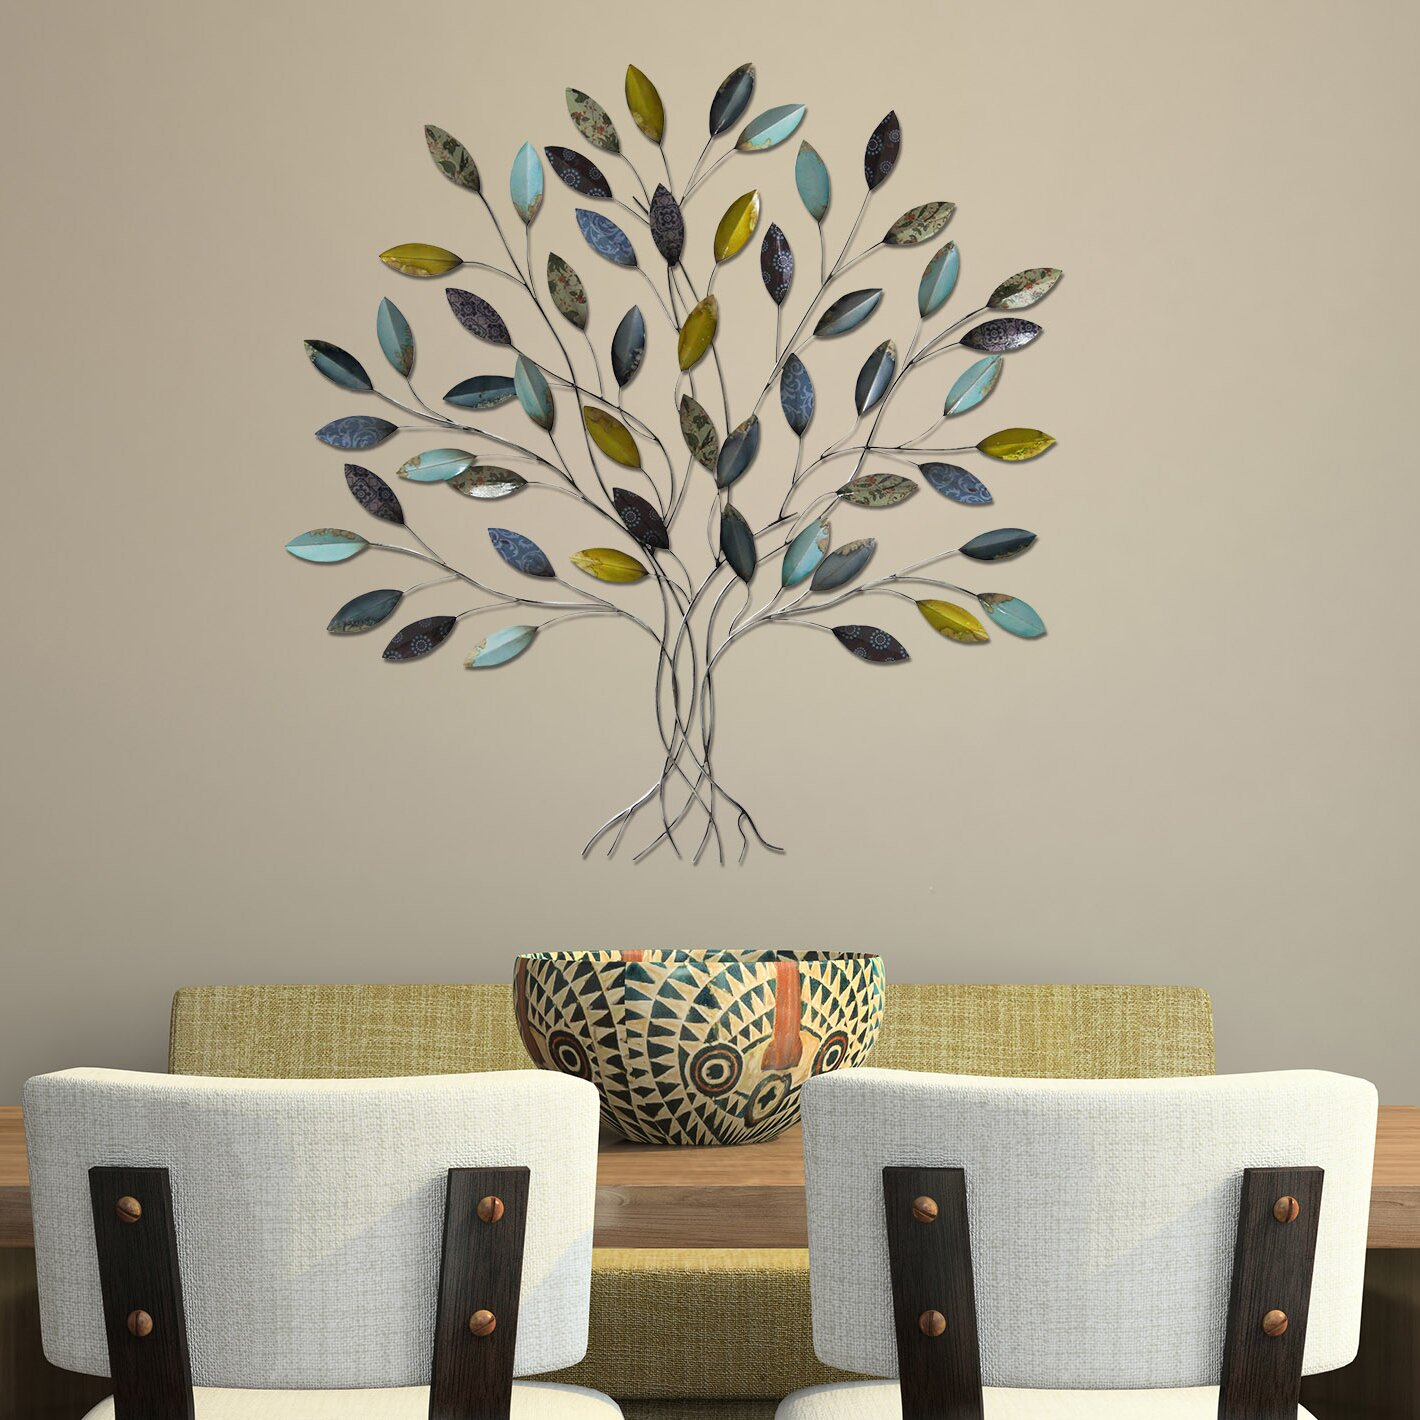 Wall Decor Home Accents : Stratton home decor tree wall d?cor reviews wayfair